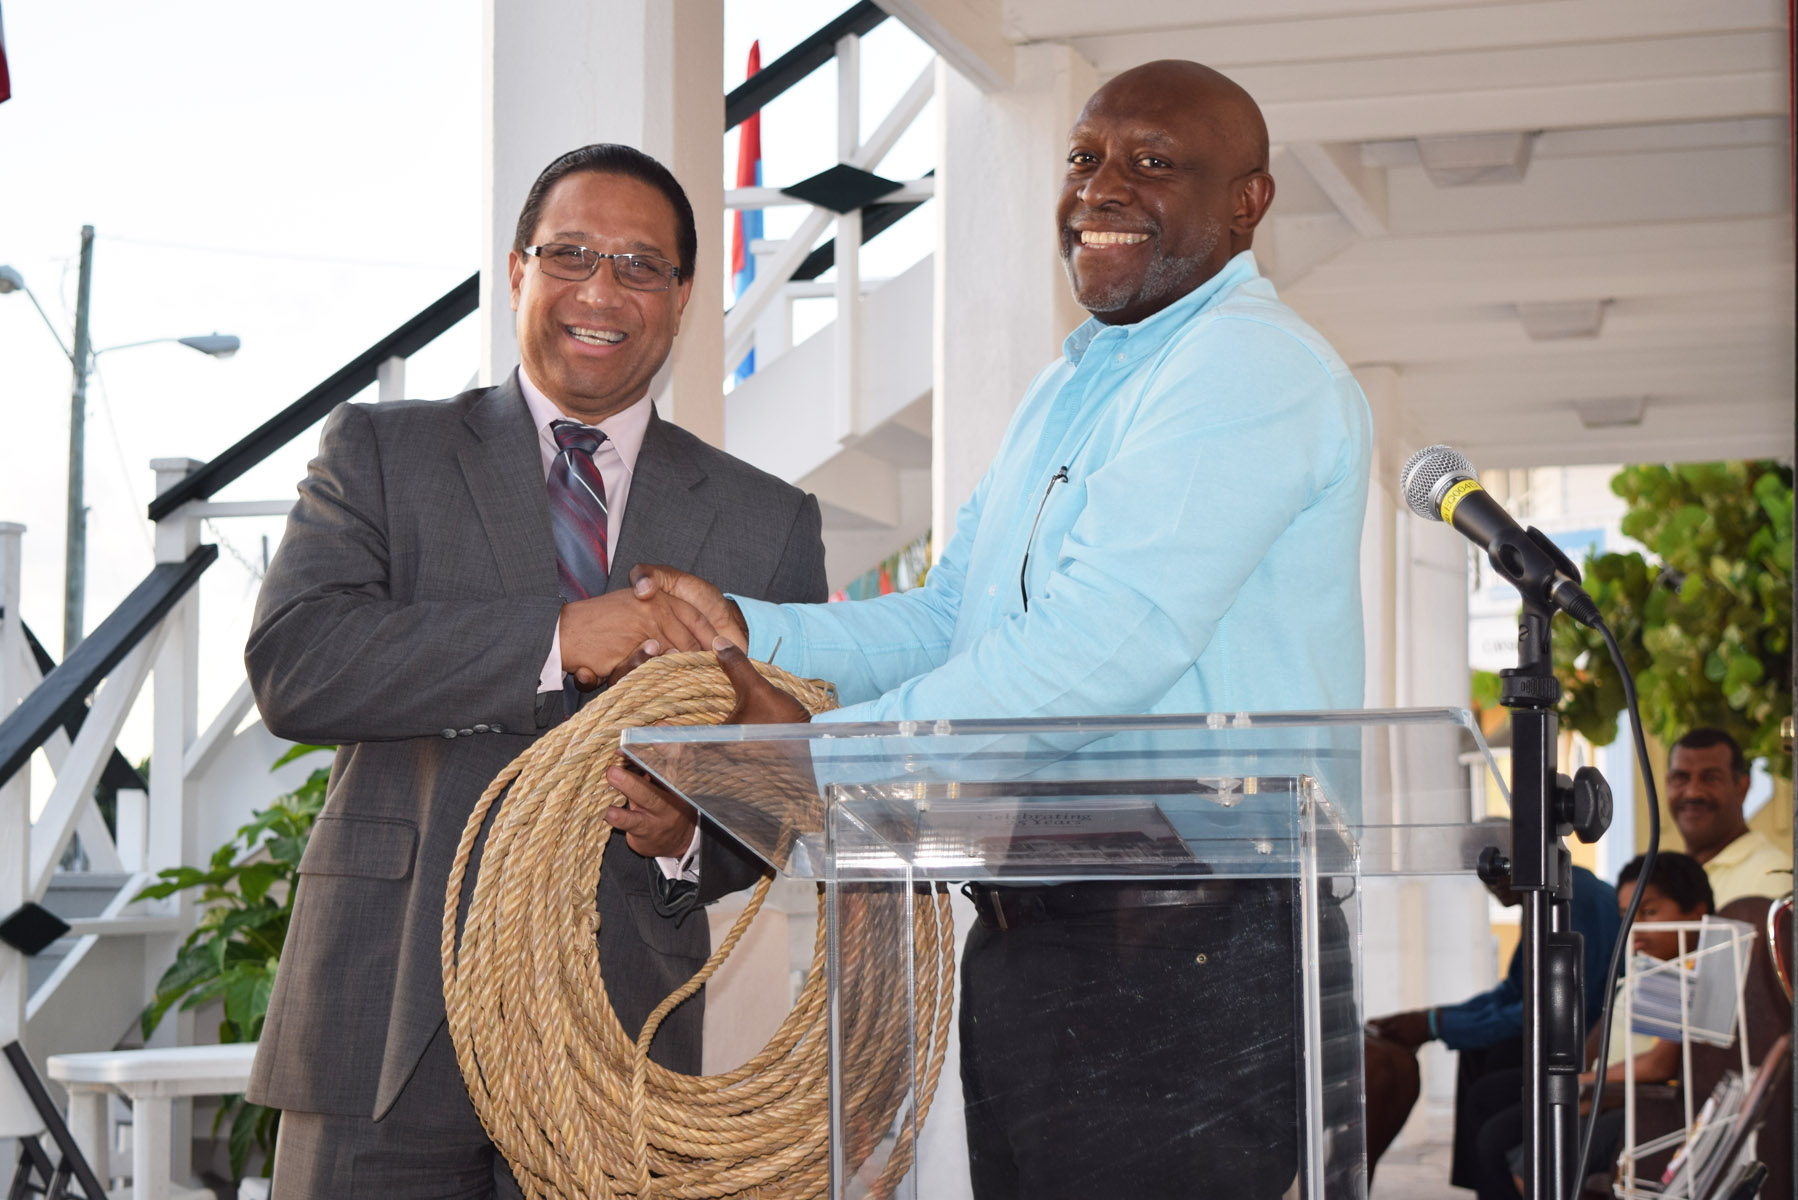 The Premier receives a coil of rope as symbolic payment for the Old Courts Building